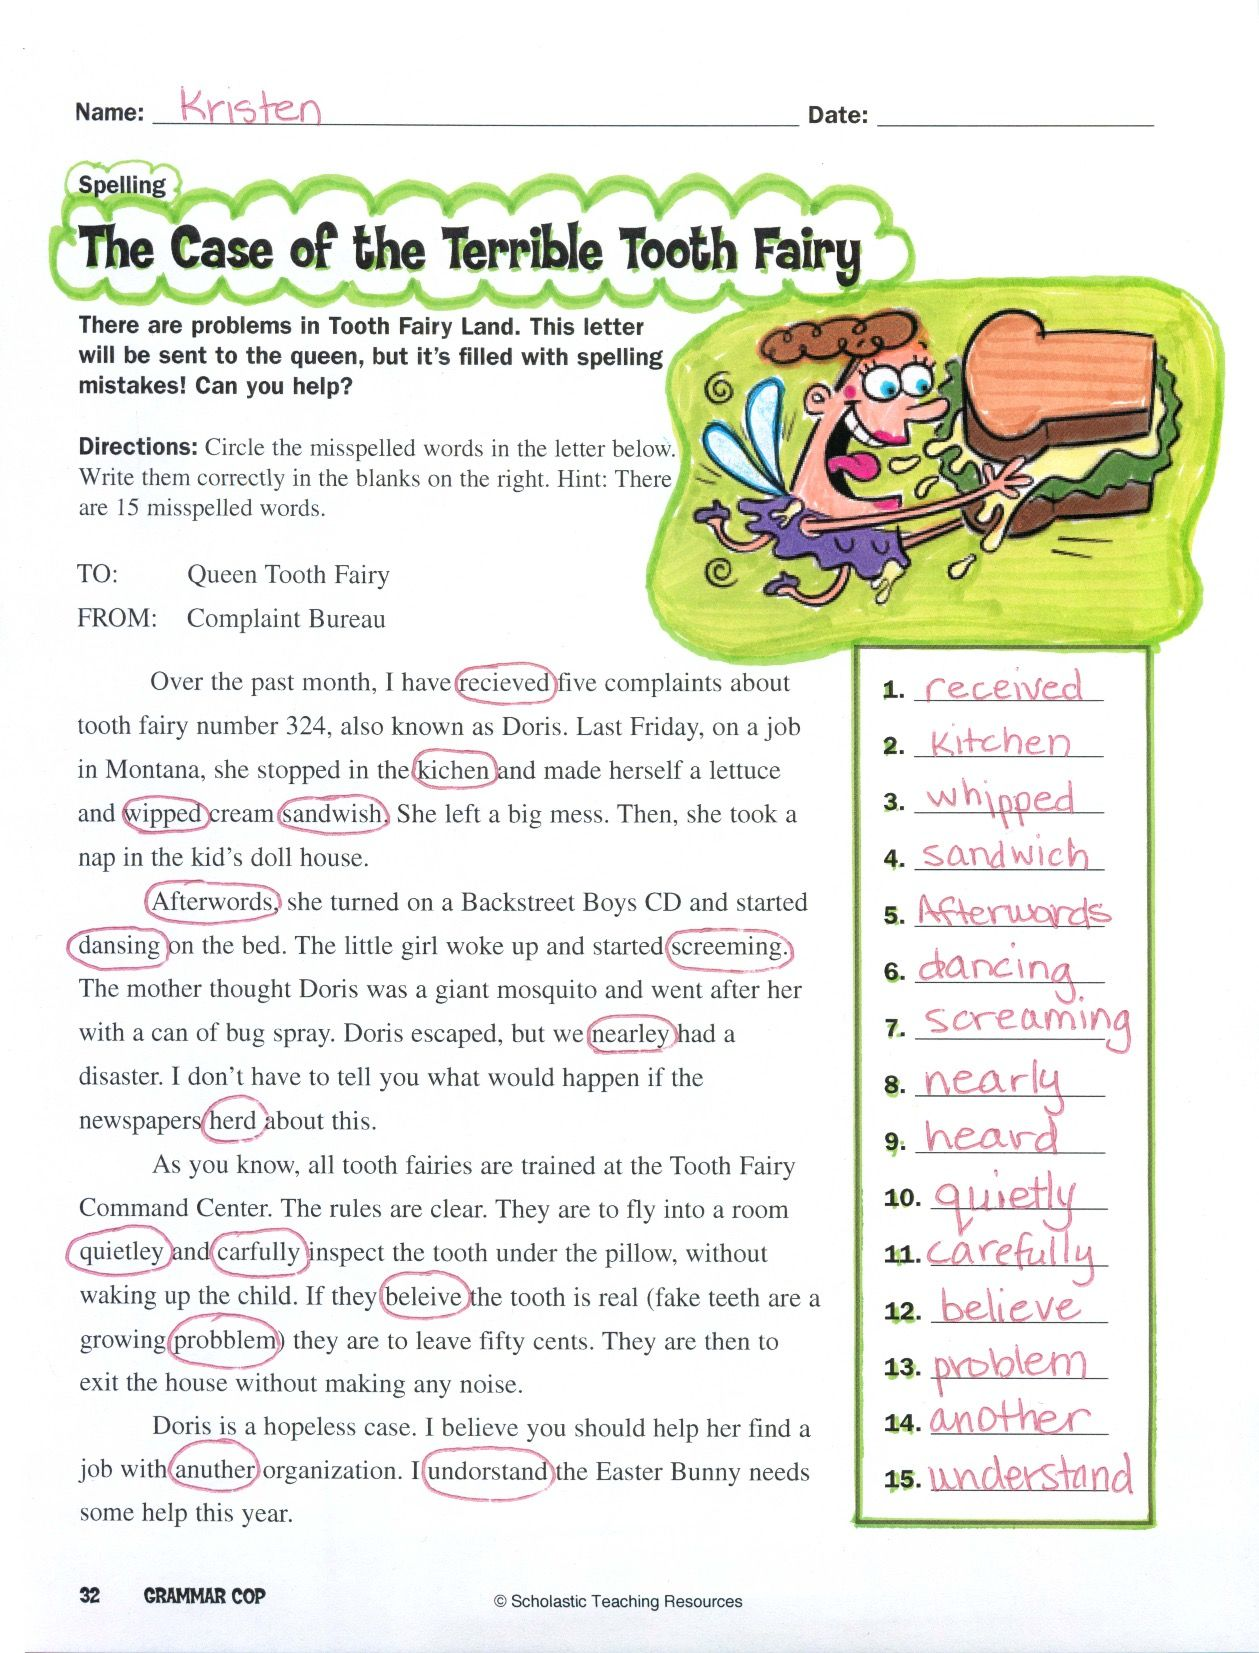 Complaint Words Help Your Kids Brush Up On Their Spelling With This Letter Filing A .